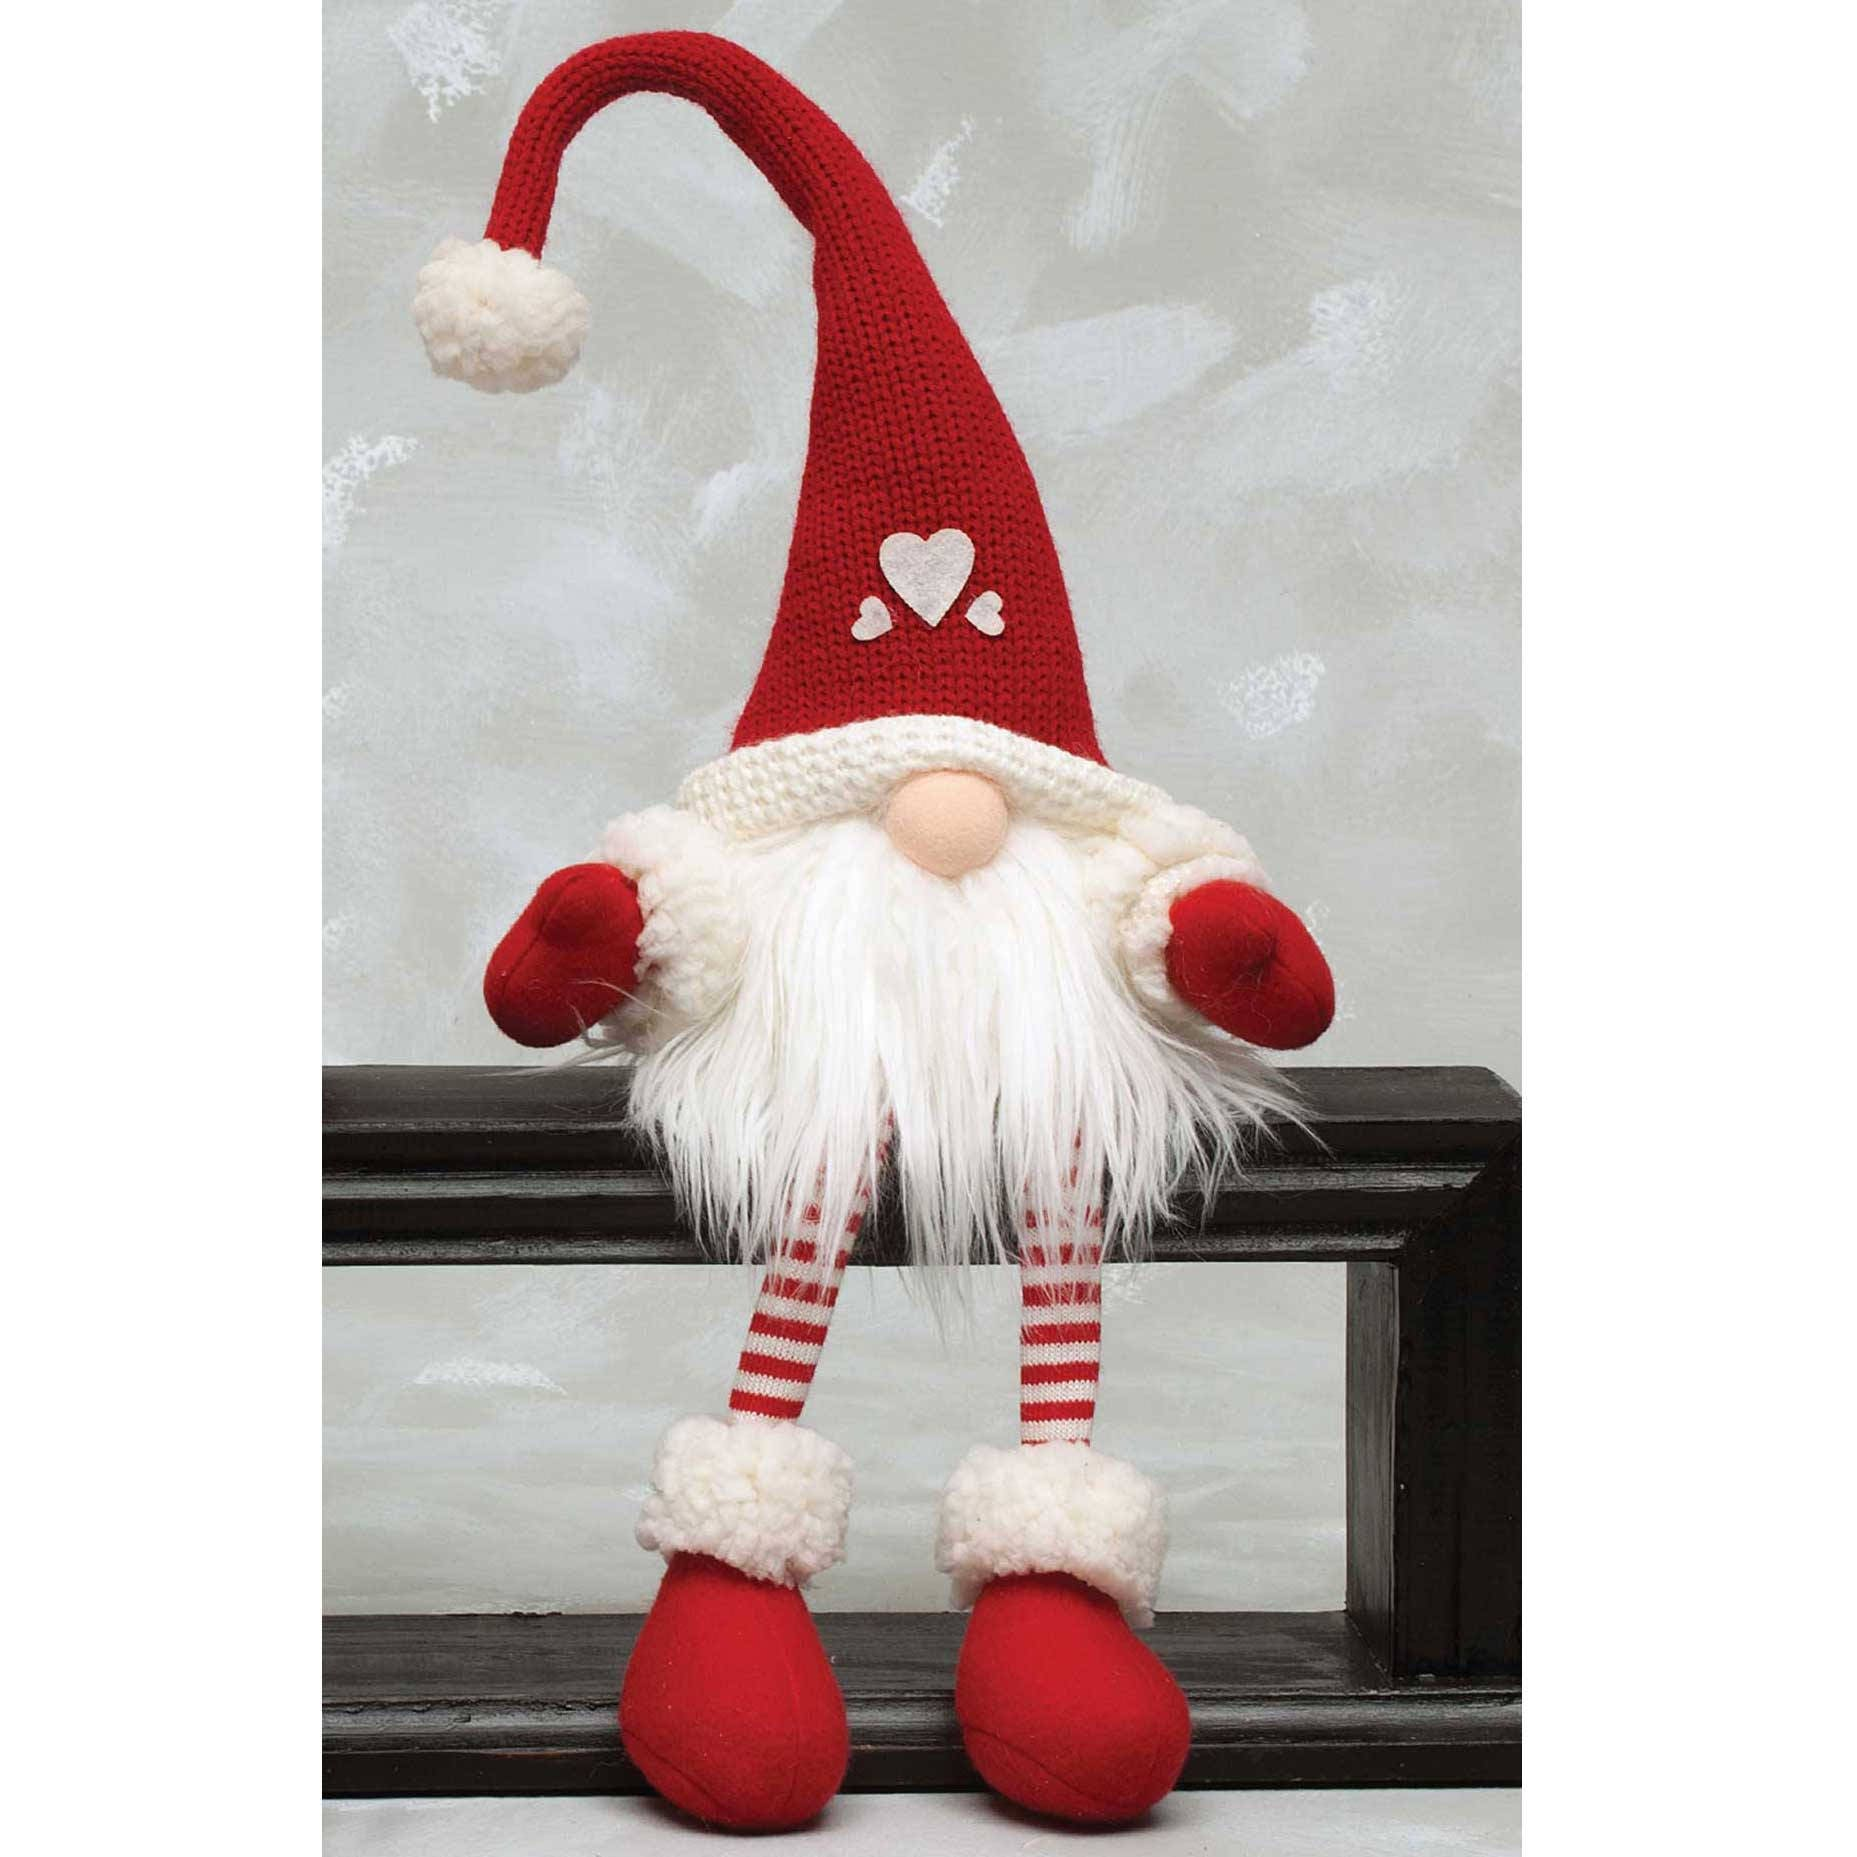 holiday heart gnome 24 or 36 tall valentines day gnomes christmas gnome holiday gnome kids gift cute christmas decor xmas - Christmas Gnome